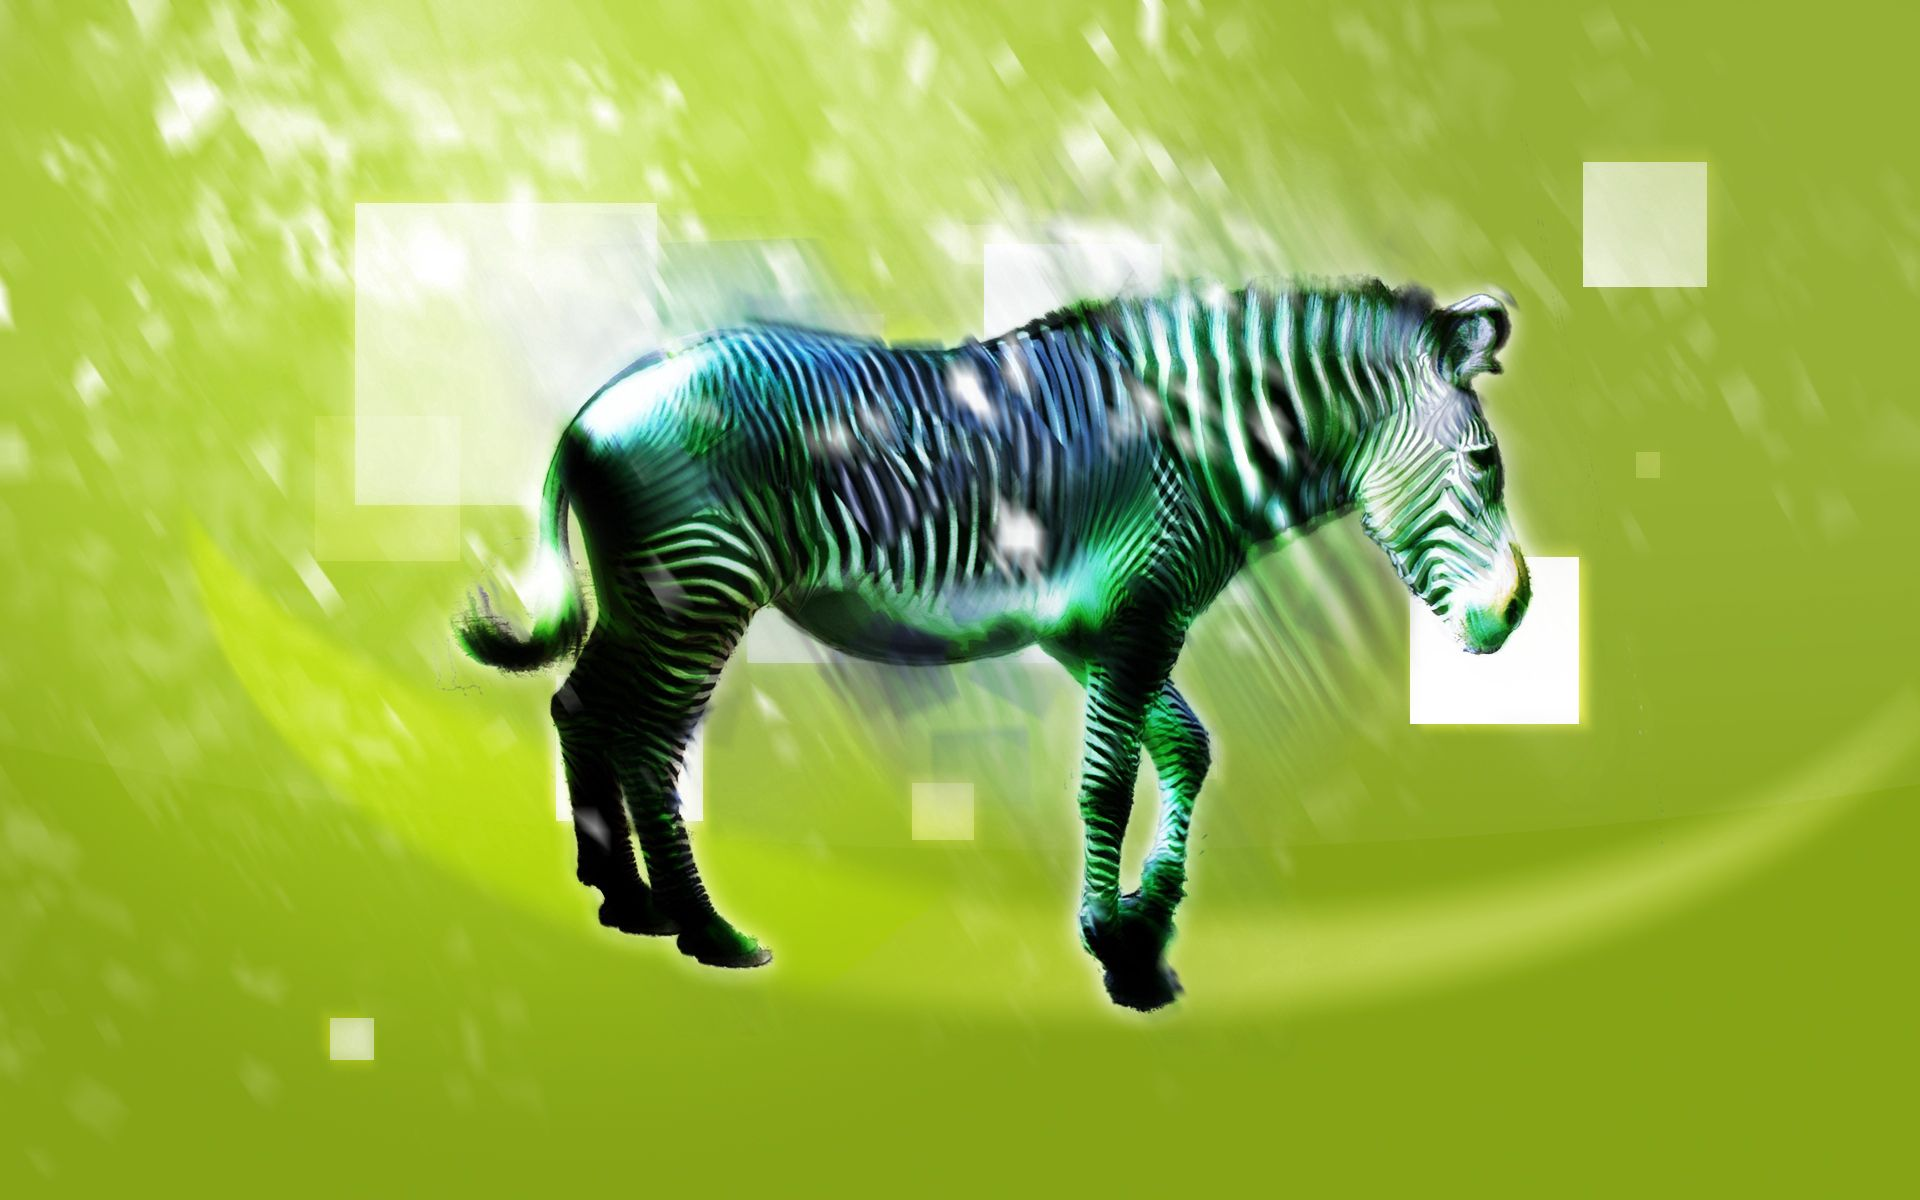 146330 download wallpaper Abstract, Zebra, Animal, Shine, Light, Picture, Drawing, Light Coloured screensavers and pictures for free